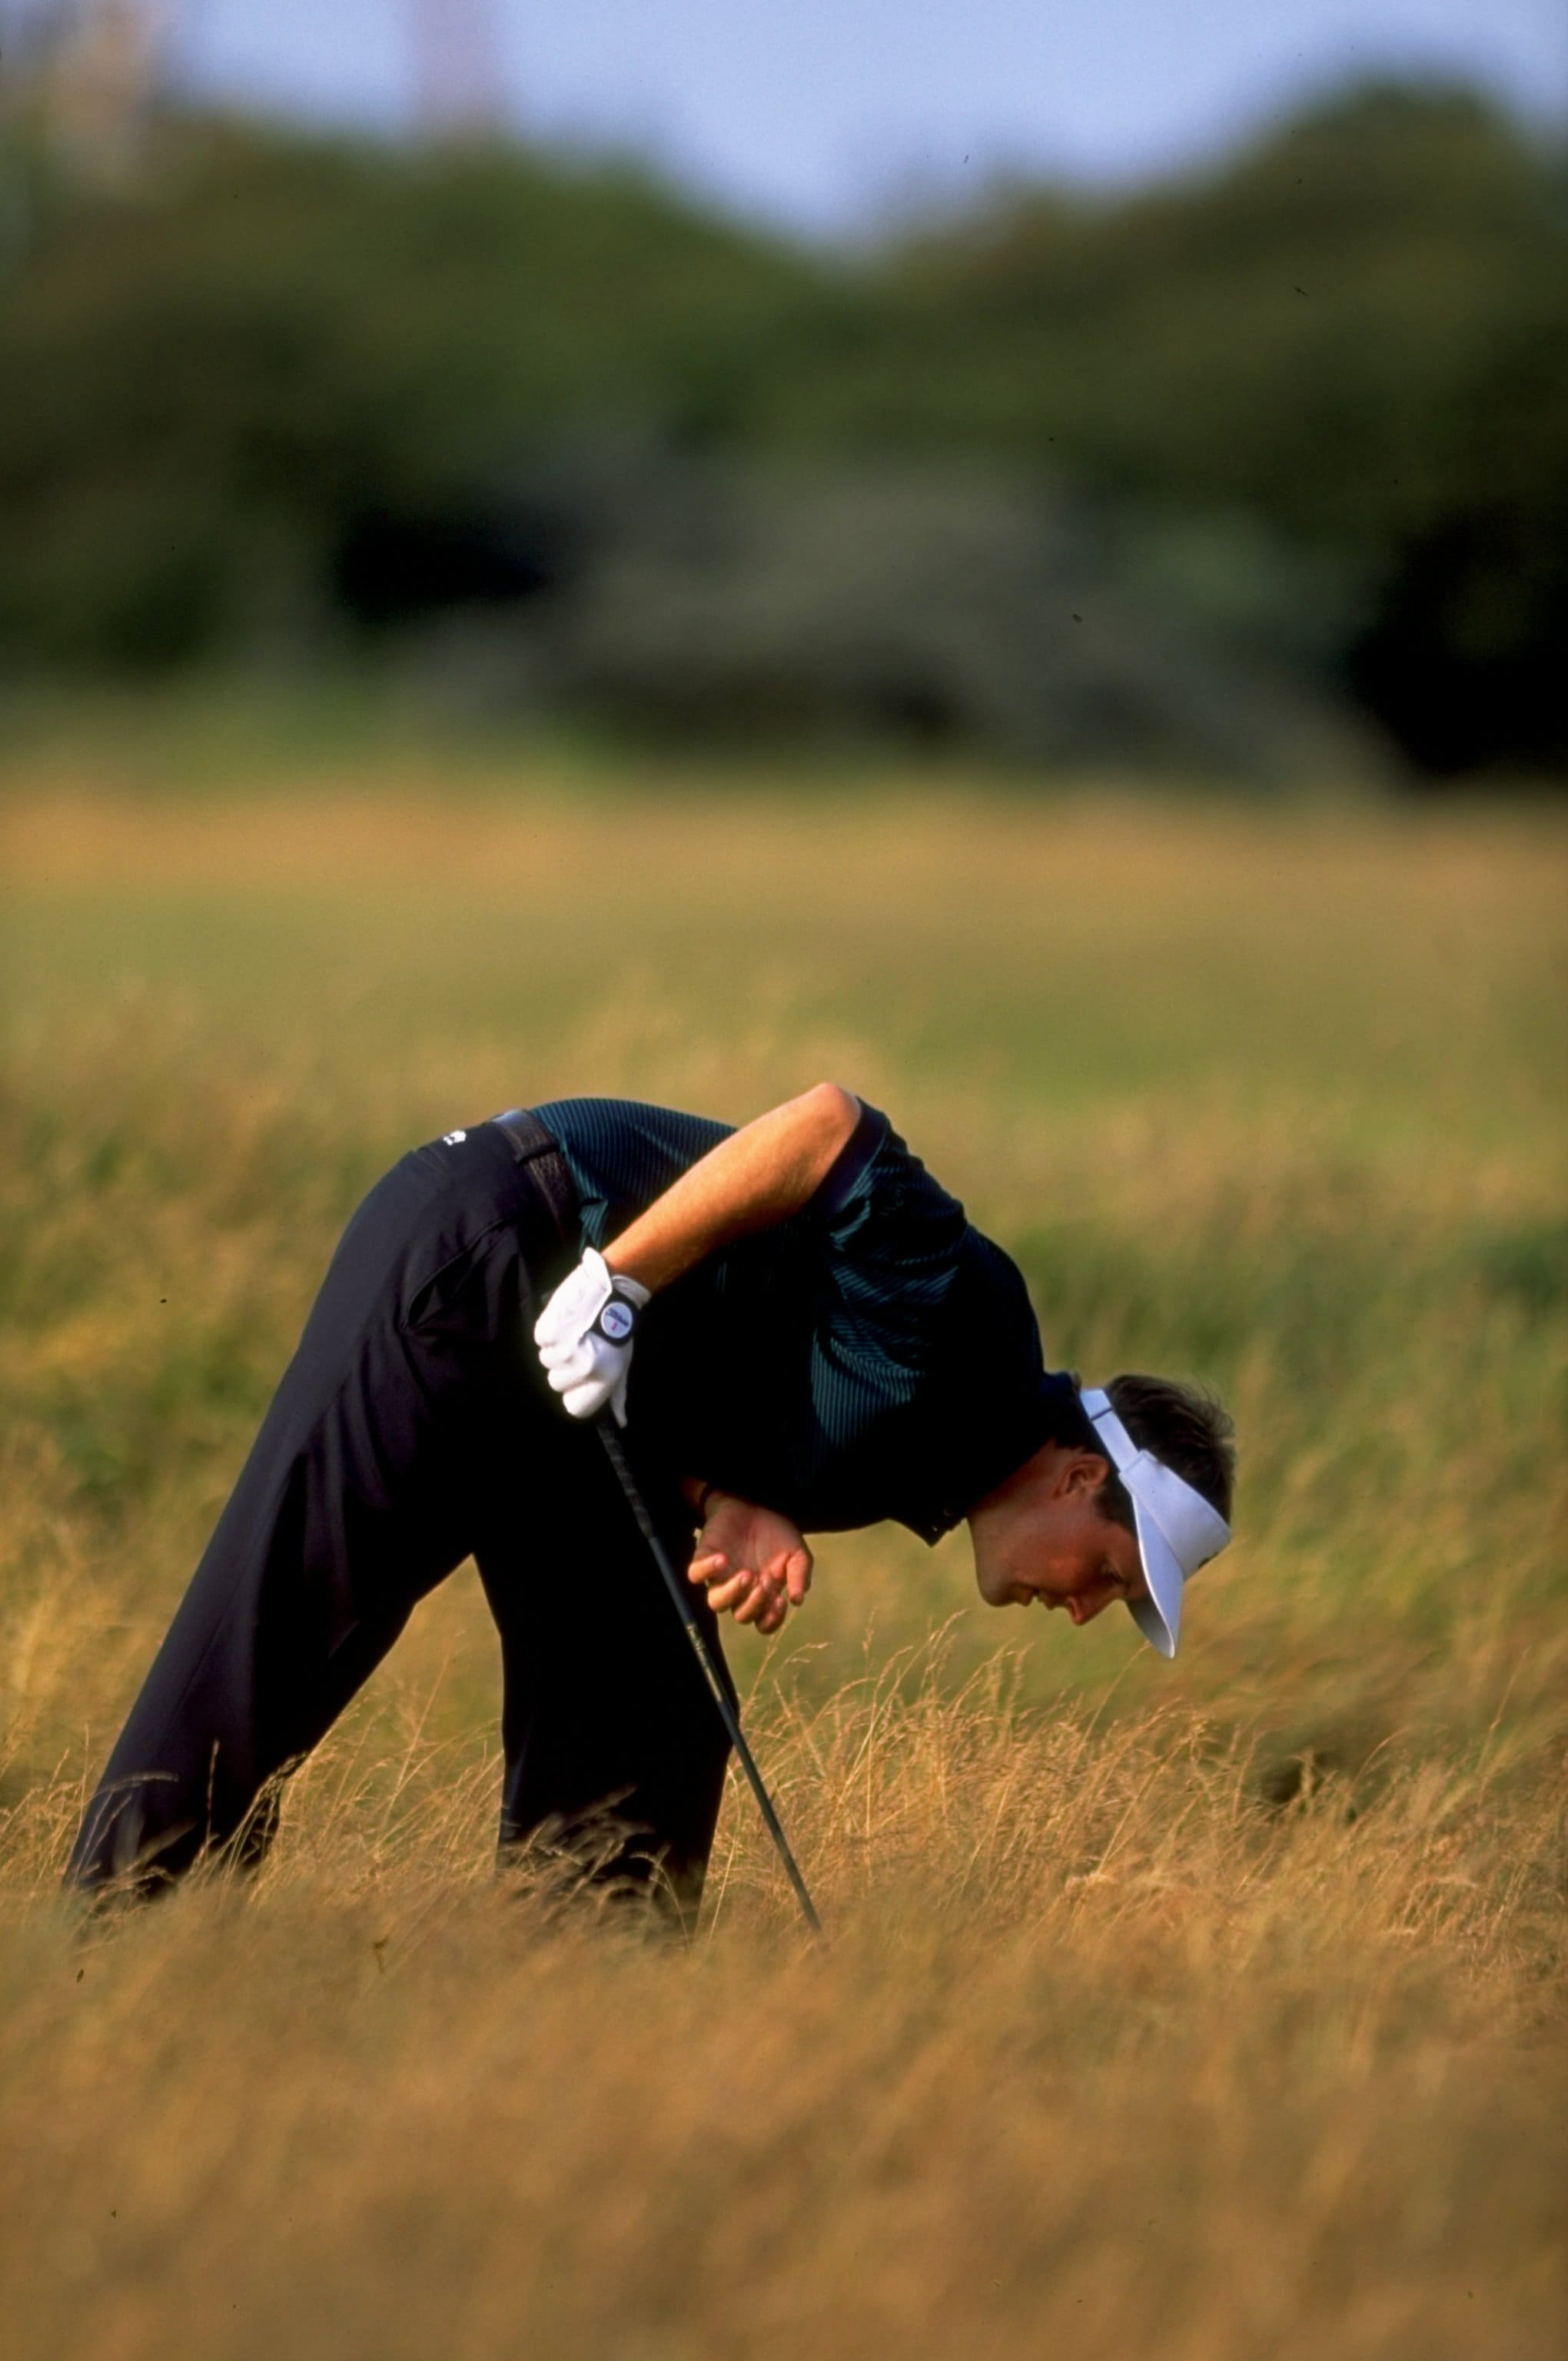 Phil Mickelson at the 1998 British Open